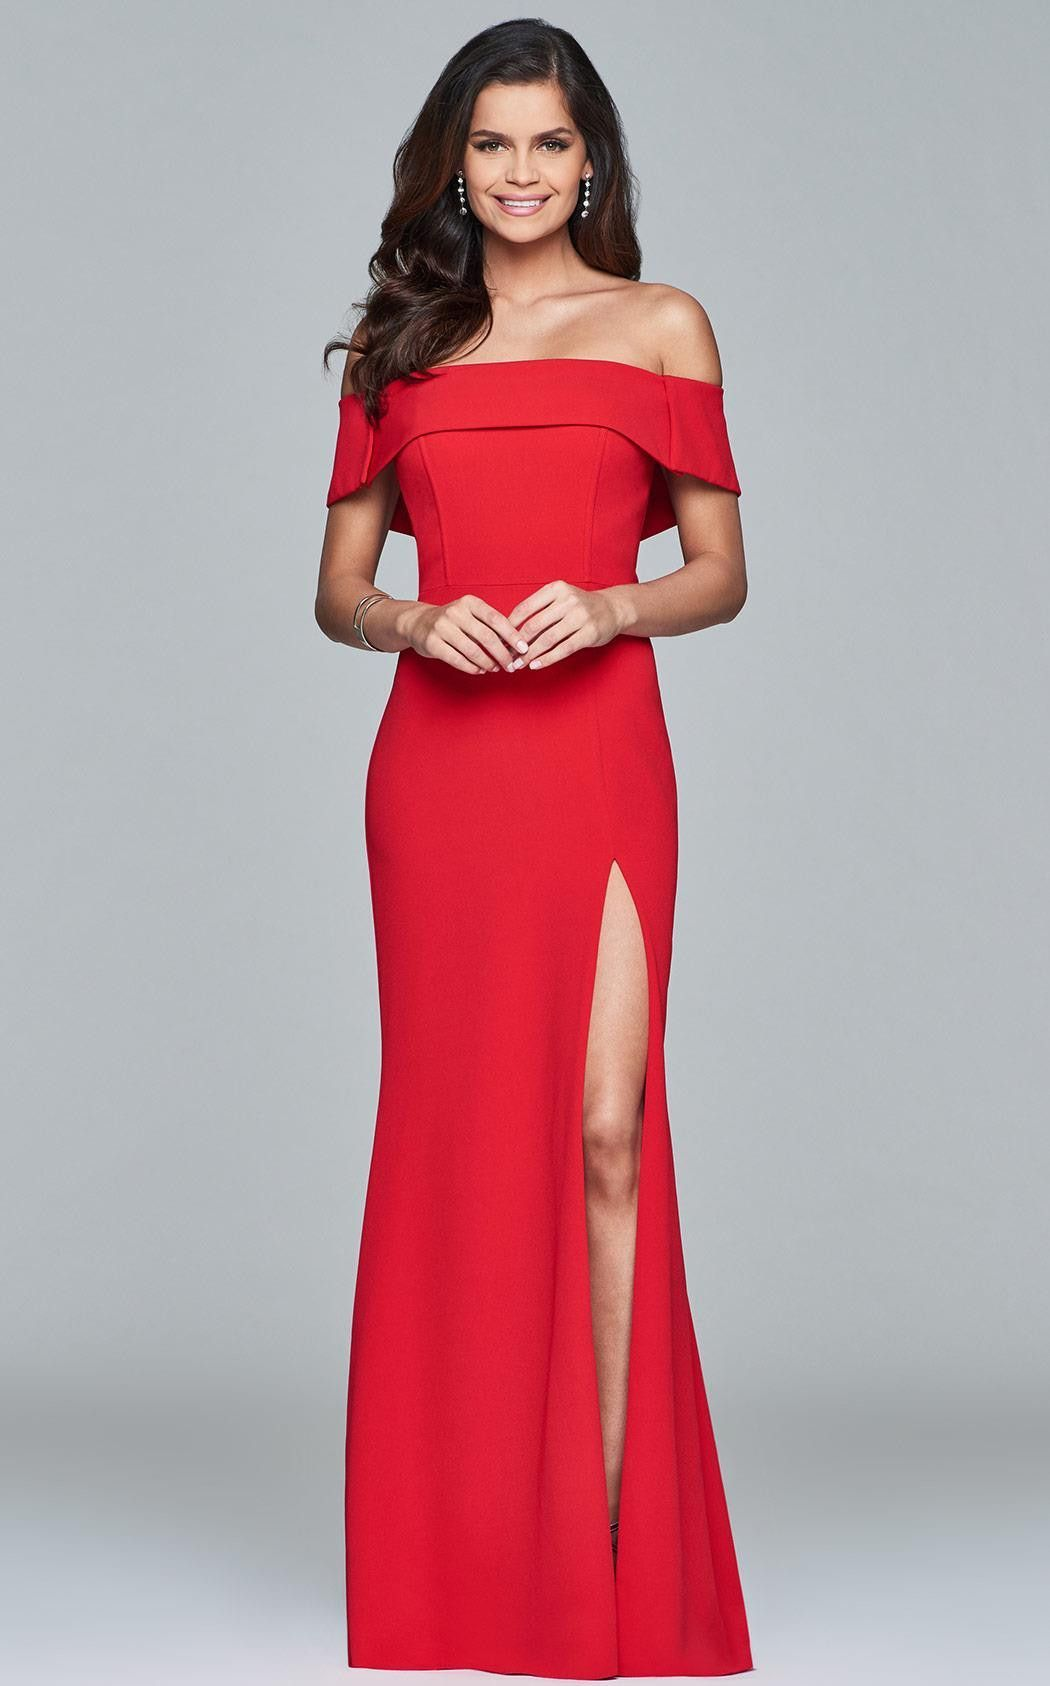 Faviana S8085 Strech crepe off the shoulder dress evening dress with front  slit. Faviana Style 0423d2f03a4b